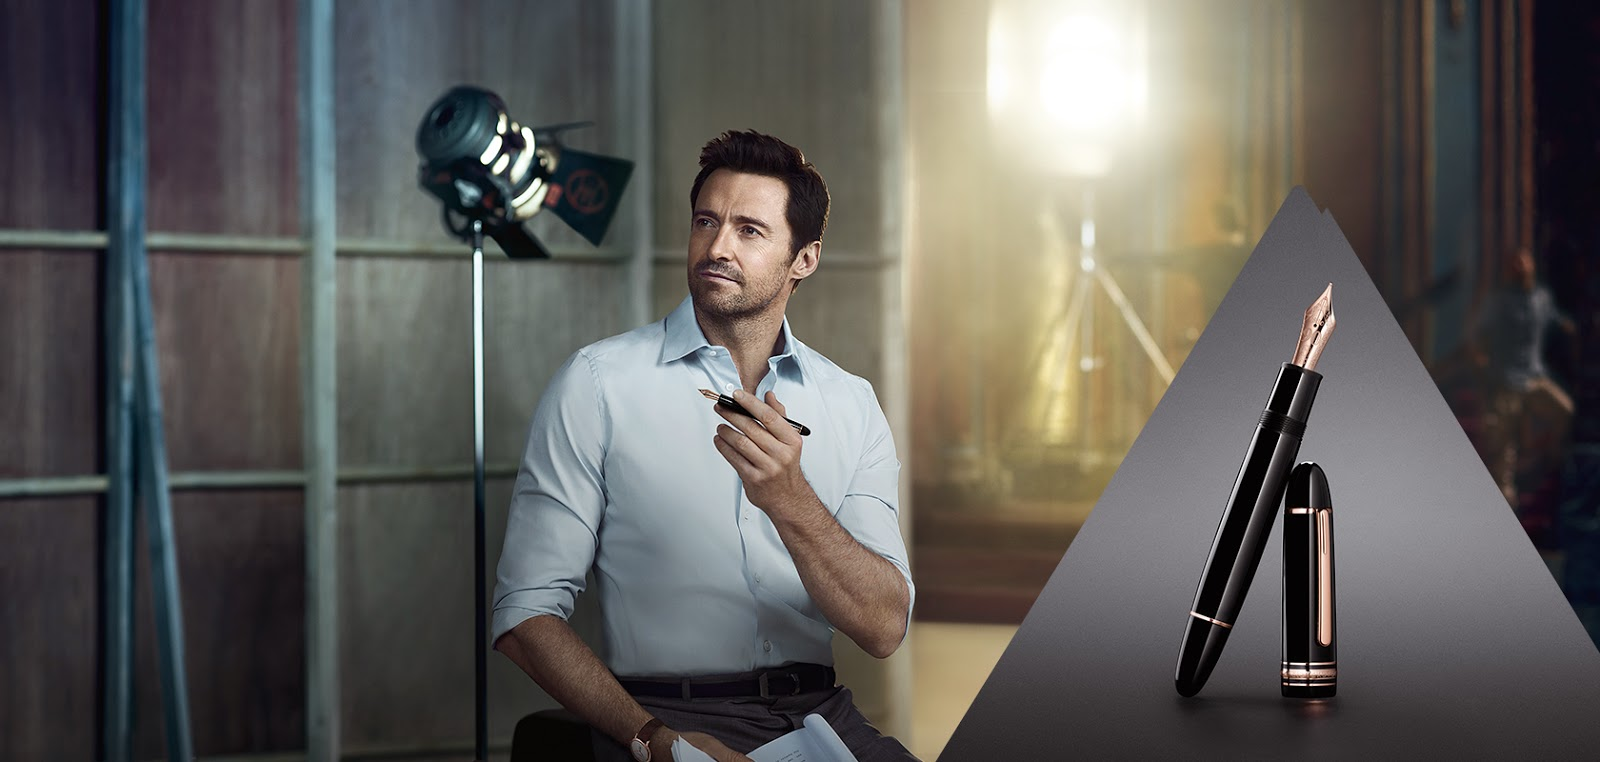 Hugh Jackman Stars in New Montblanc International Campaign